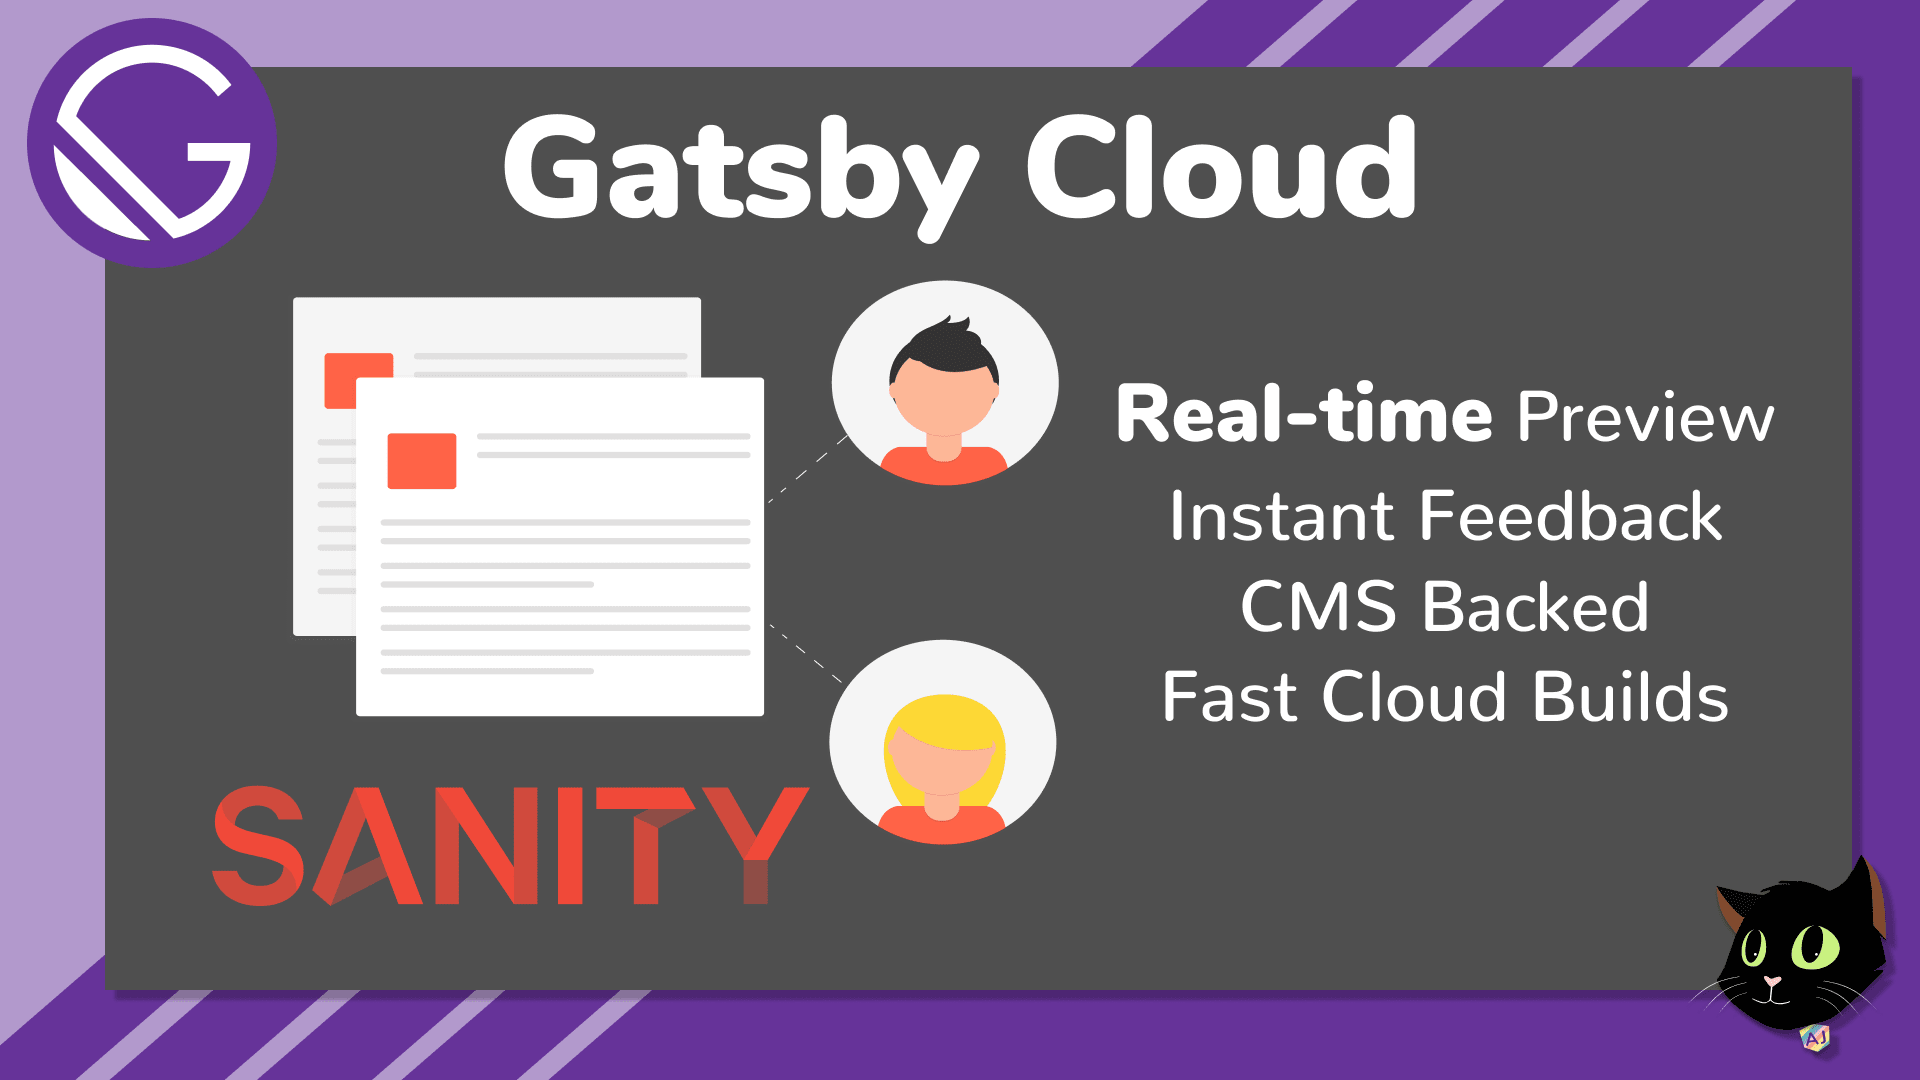 Gatsby Cloud with Sanity CMS